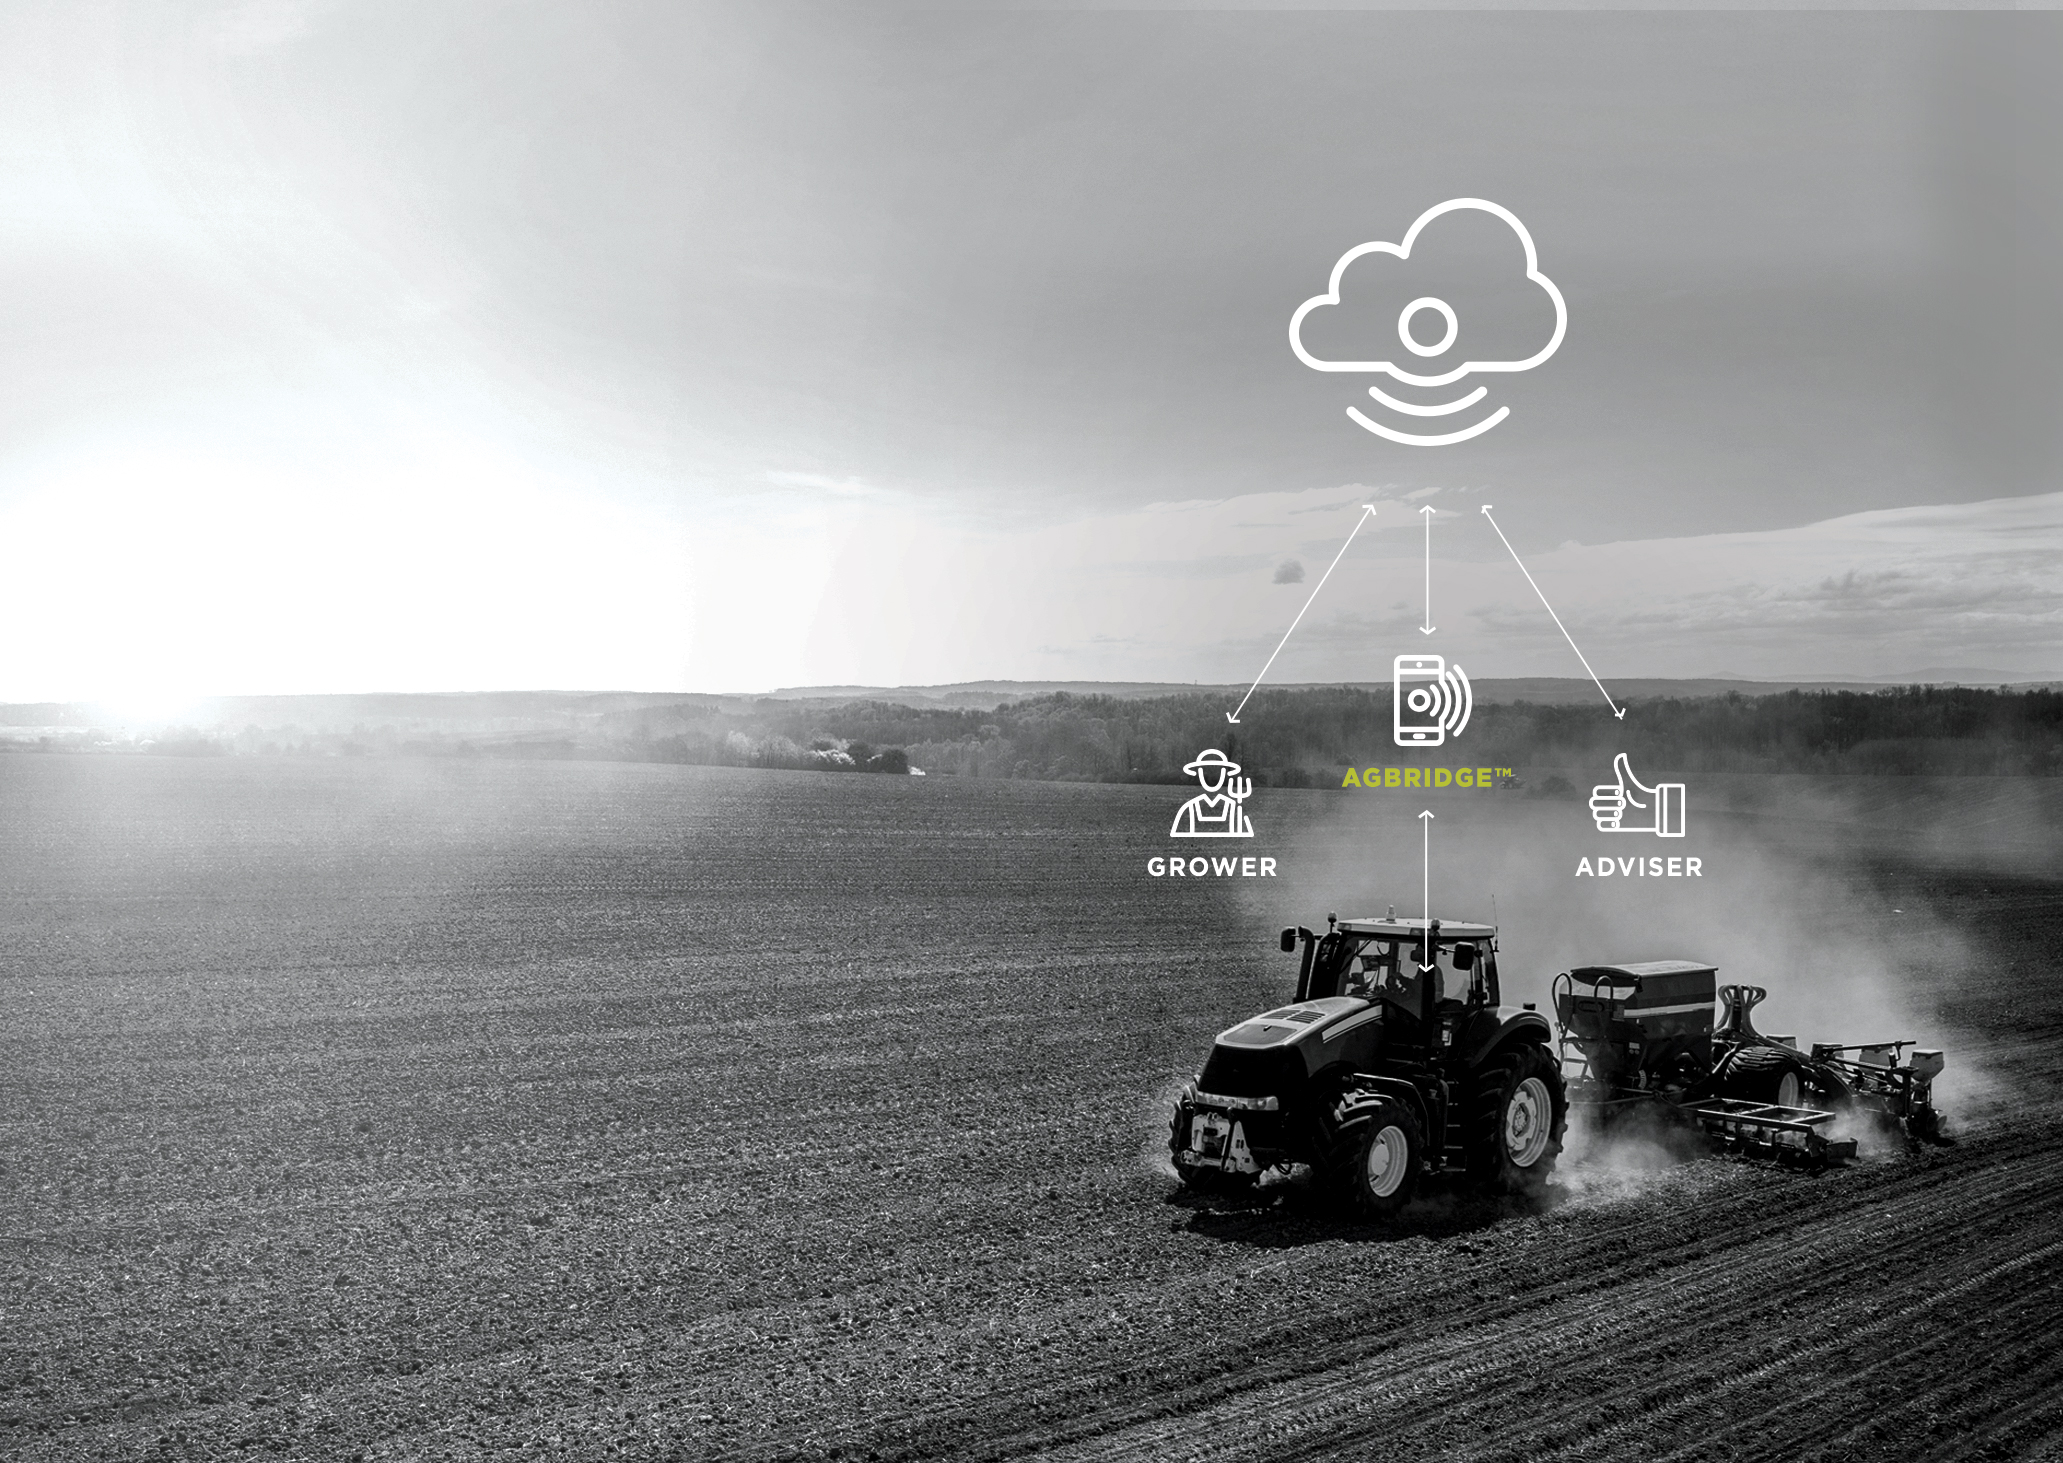 Precision Ag Data is transferred to and from a smart device by simply launching the AGBRIDGE™ App